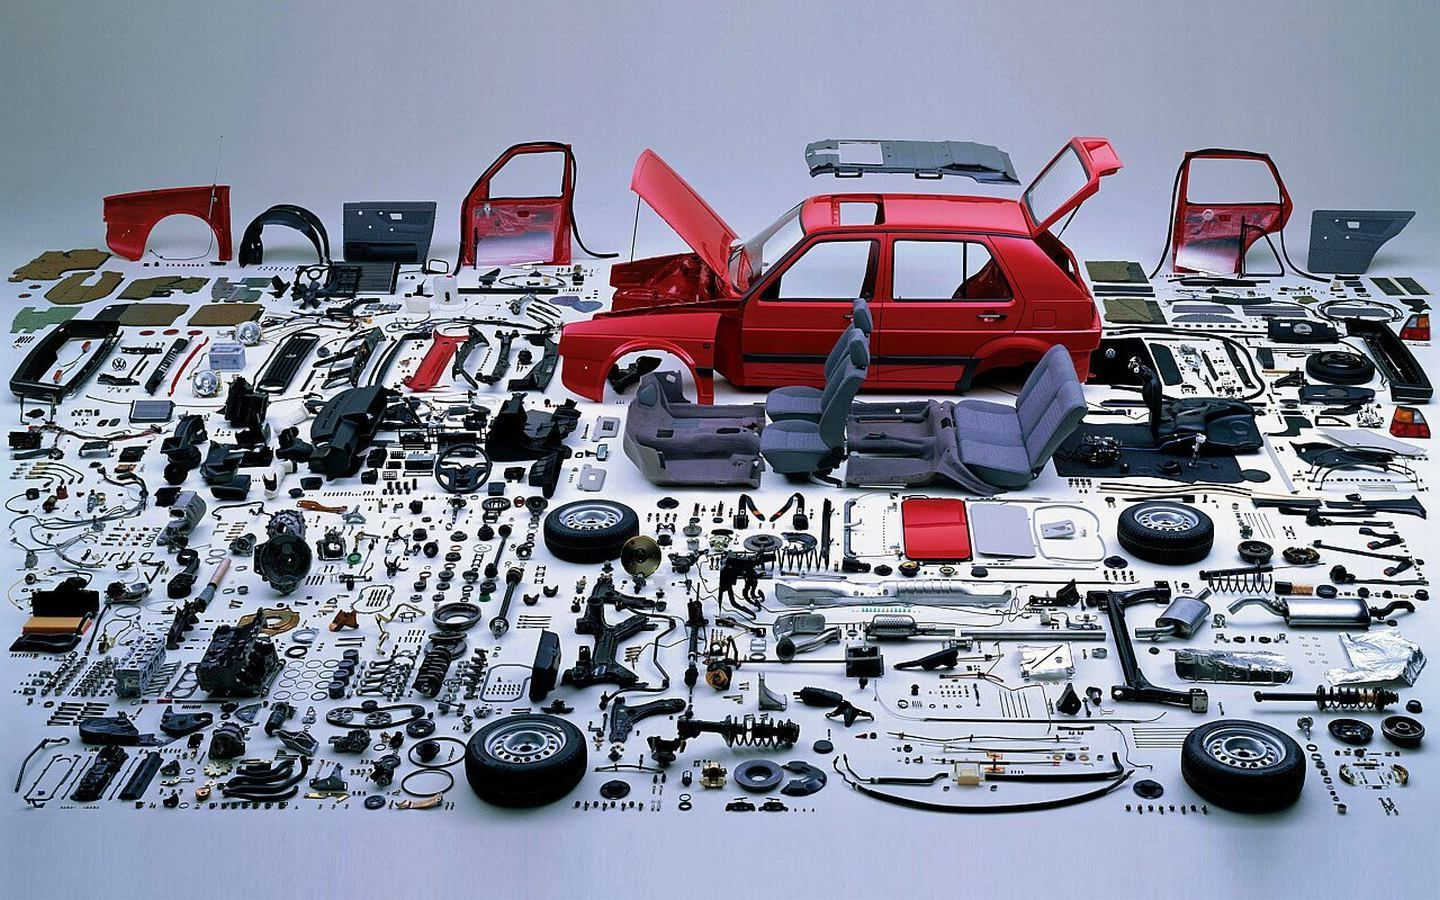 Shop for Steering and Chassis components at Budgetary cost from